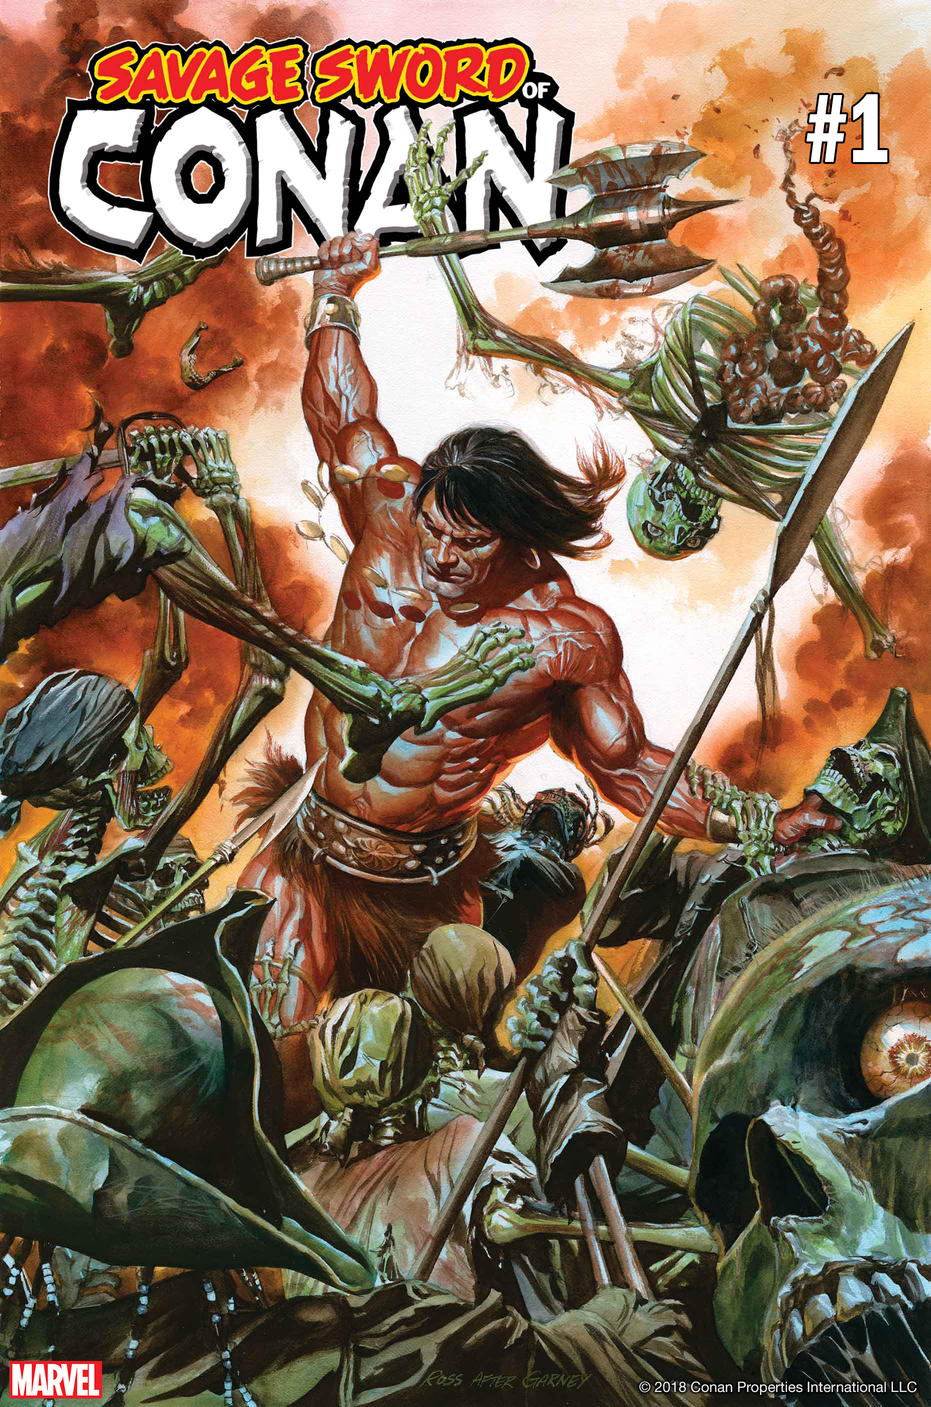 Cover of Savage Sword of Conan by Alex Ross